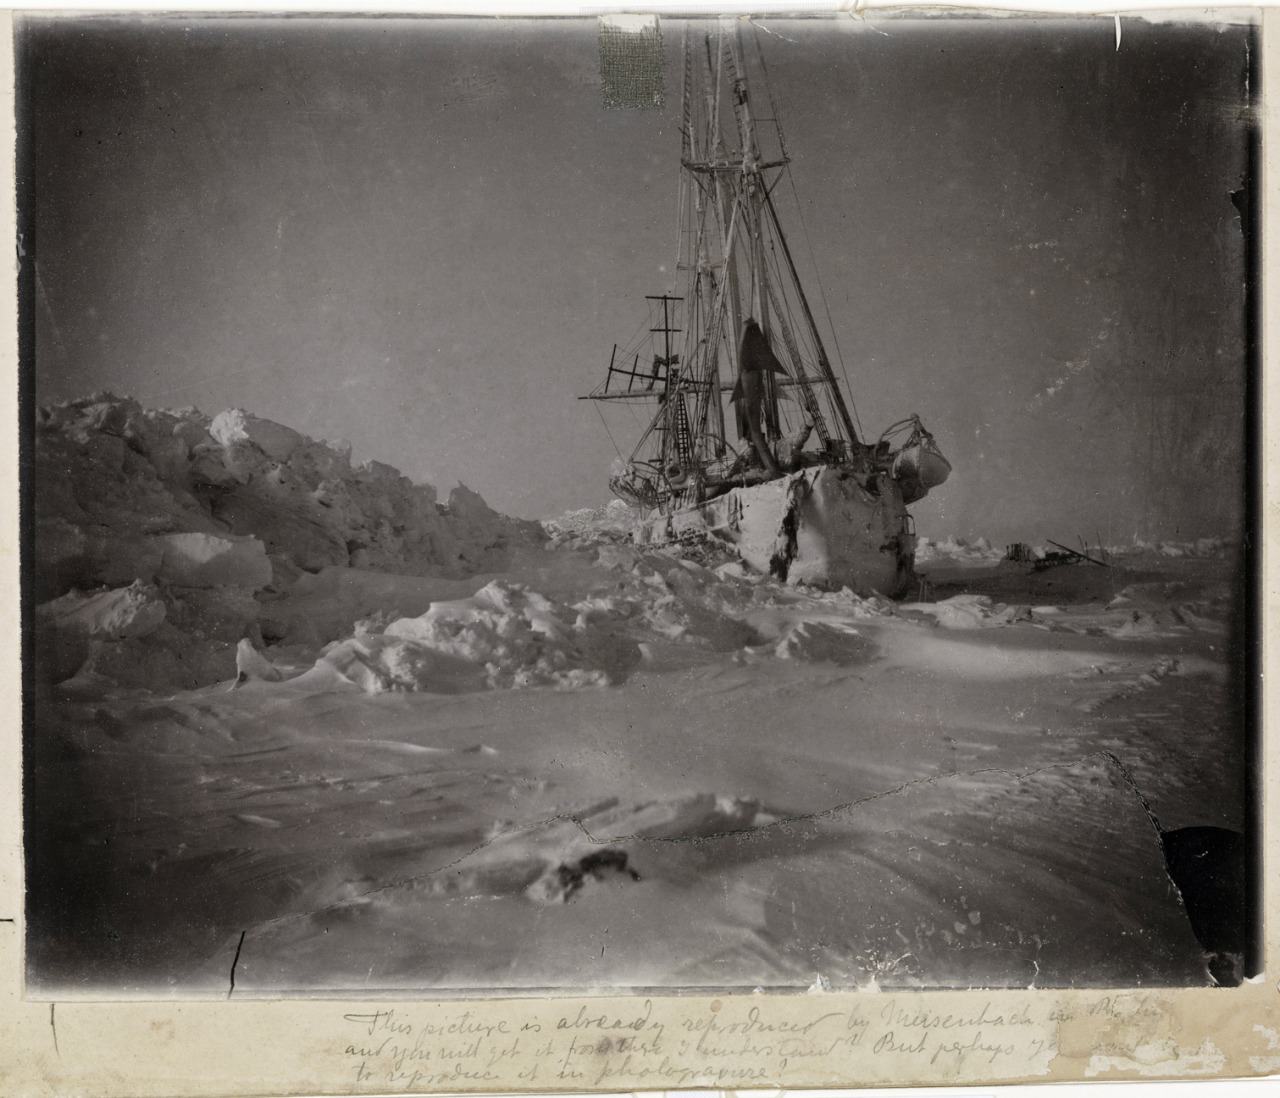 The Fram, locked in Arctic ice, January 1895. Although the Fram is probably more famous for being the ship that Roald Amundsen sailed to Antarctica to begin his epic 99 day/1,860 mile ski to the South Pole, it was in fact originally built by Fridtjof Nansen to try and reach the geographical North Pole by theoretically harnessing the natural east–west current of the Arctic Ocean. The above photo was taken during that maiden voyage. I've posted more about this amazing journey, and yes, there's lots of skiing…: http://vintageski.tumblr.com/post/29161370887/fredrik-hjalmar-johansen-outside-of-elmwood http://vintageski.tumblr.com/post/31343132995/heres-a-photo-of-fridtjof-nansen-and-hjalmar http://vintageski.tumblr.com/post/31734681154/fridtjof-nansen-beside-elmwood-frederick http://vintageski.tumblr.com/post/36438275996/henrik-greve-blessing-on-his-way-to-collect-algae